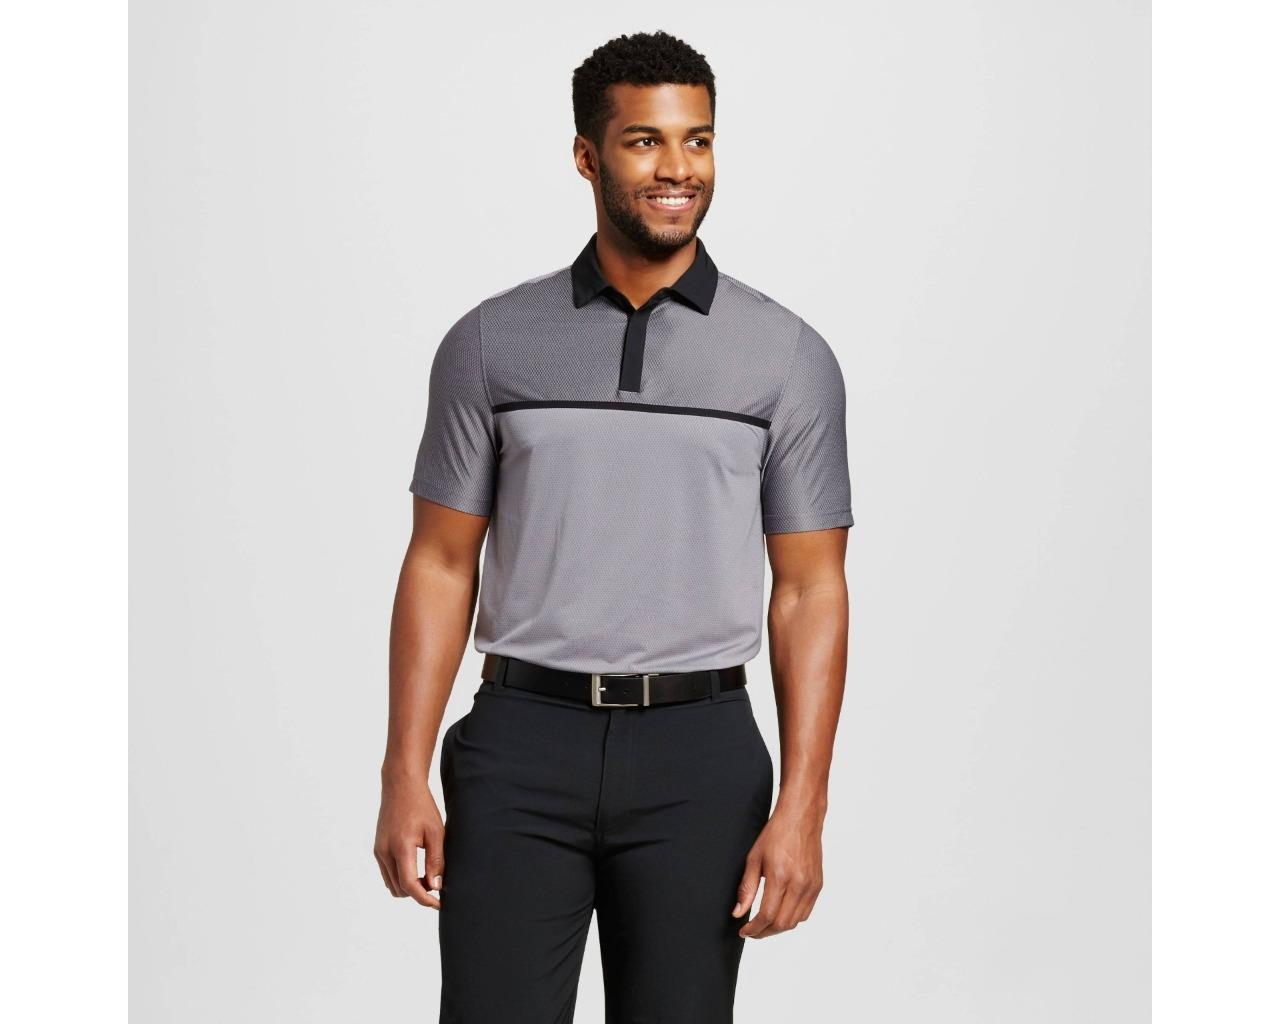 a28af2b02 C9 Champion Men s Speed Knit Golf Polo Shirt - Concrete Gray - Size Small